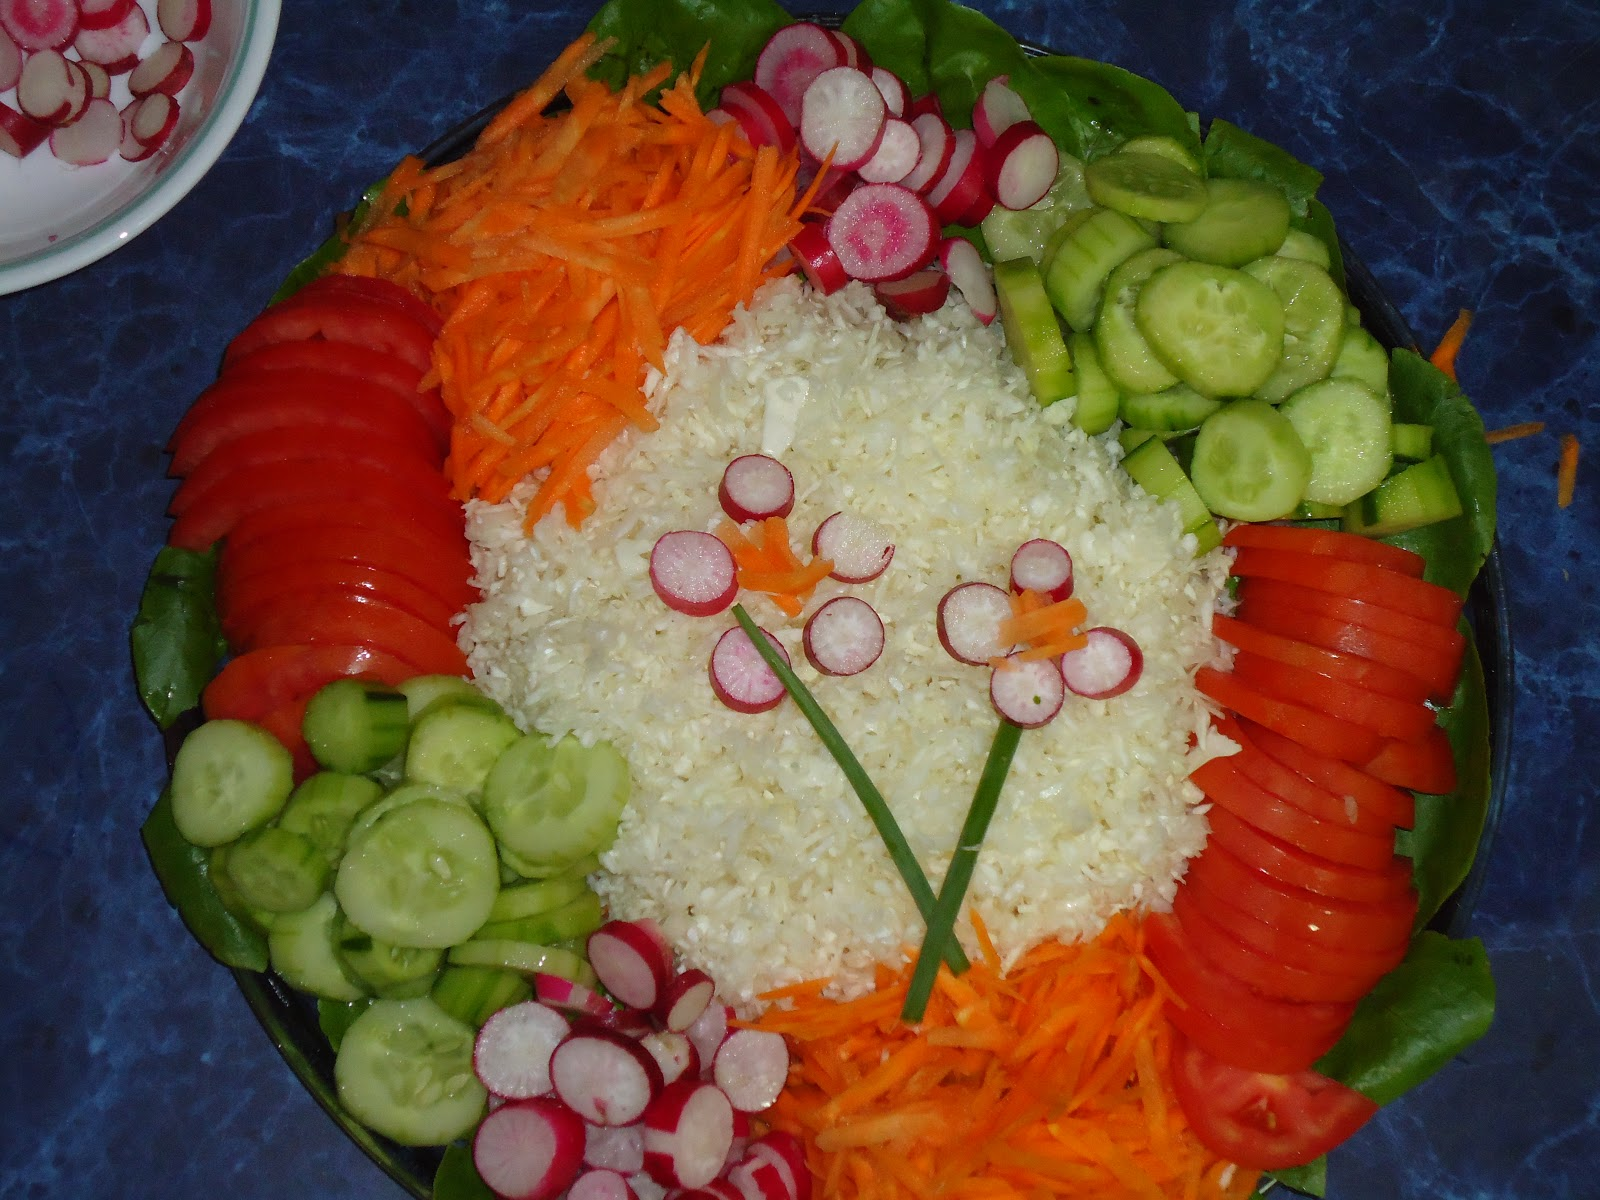 Decorating Ideas > The Chacogirl May Things ~ 224209_Cake Decorating Ideas Vegetables